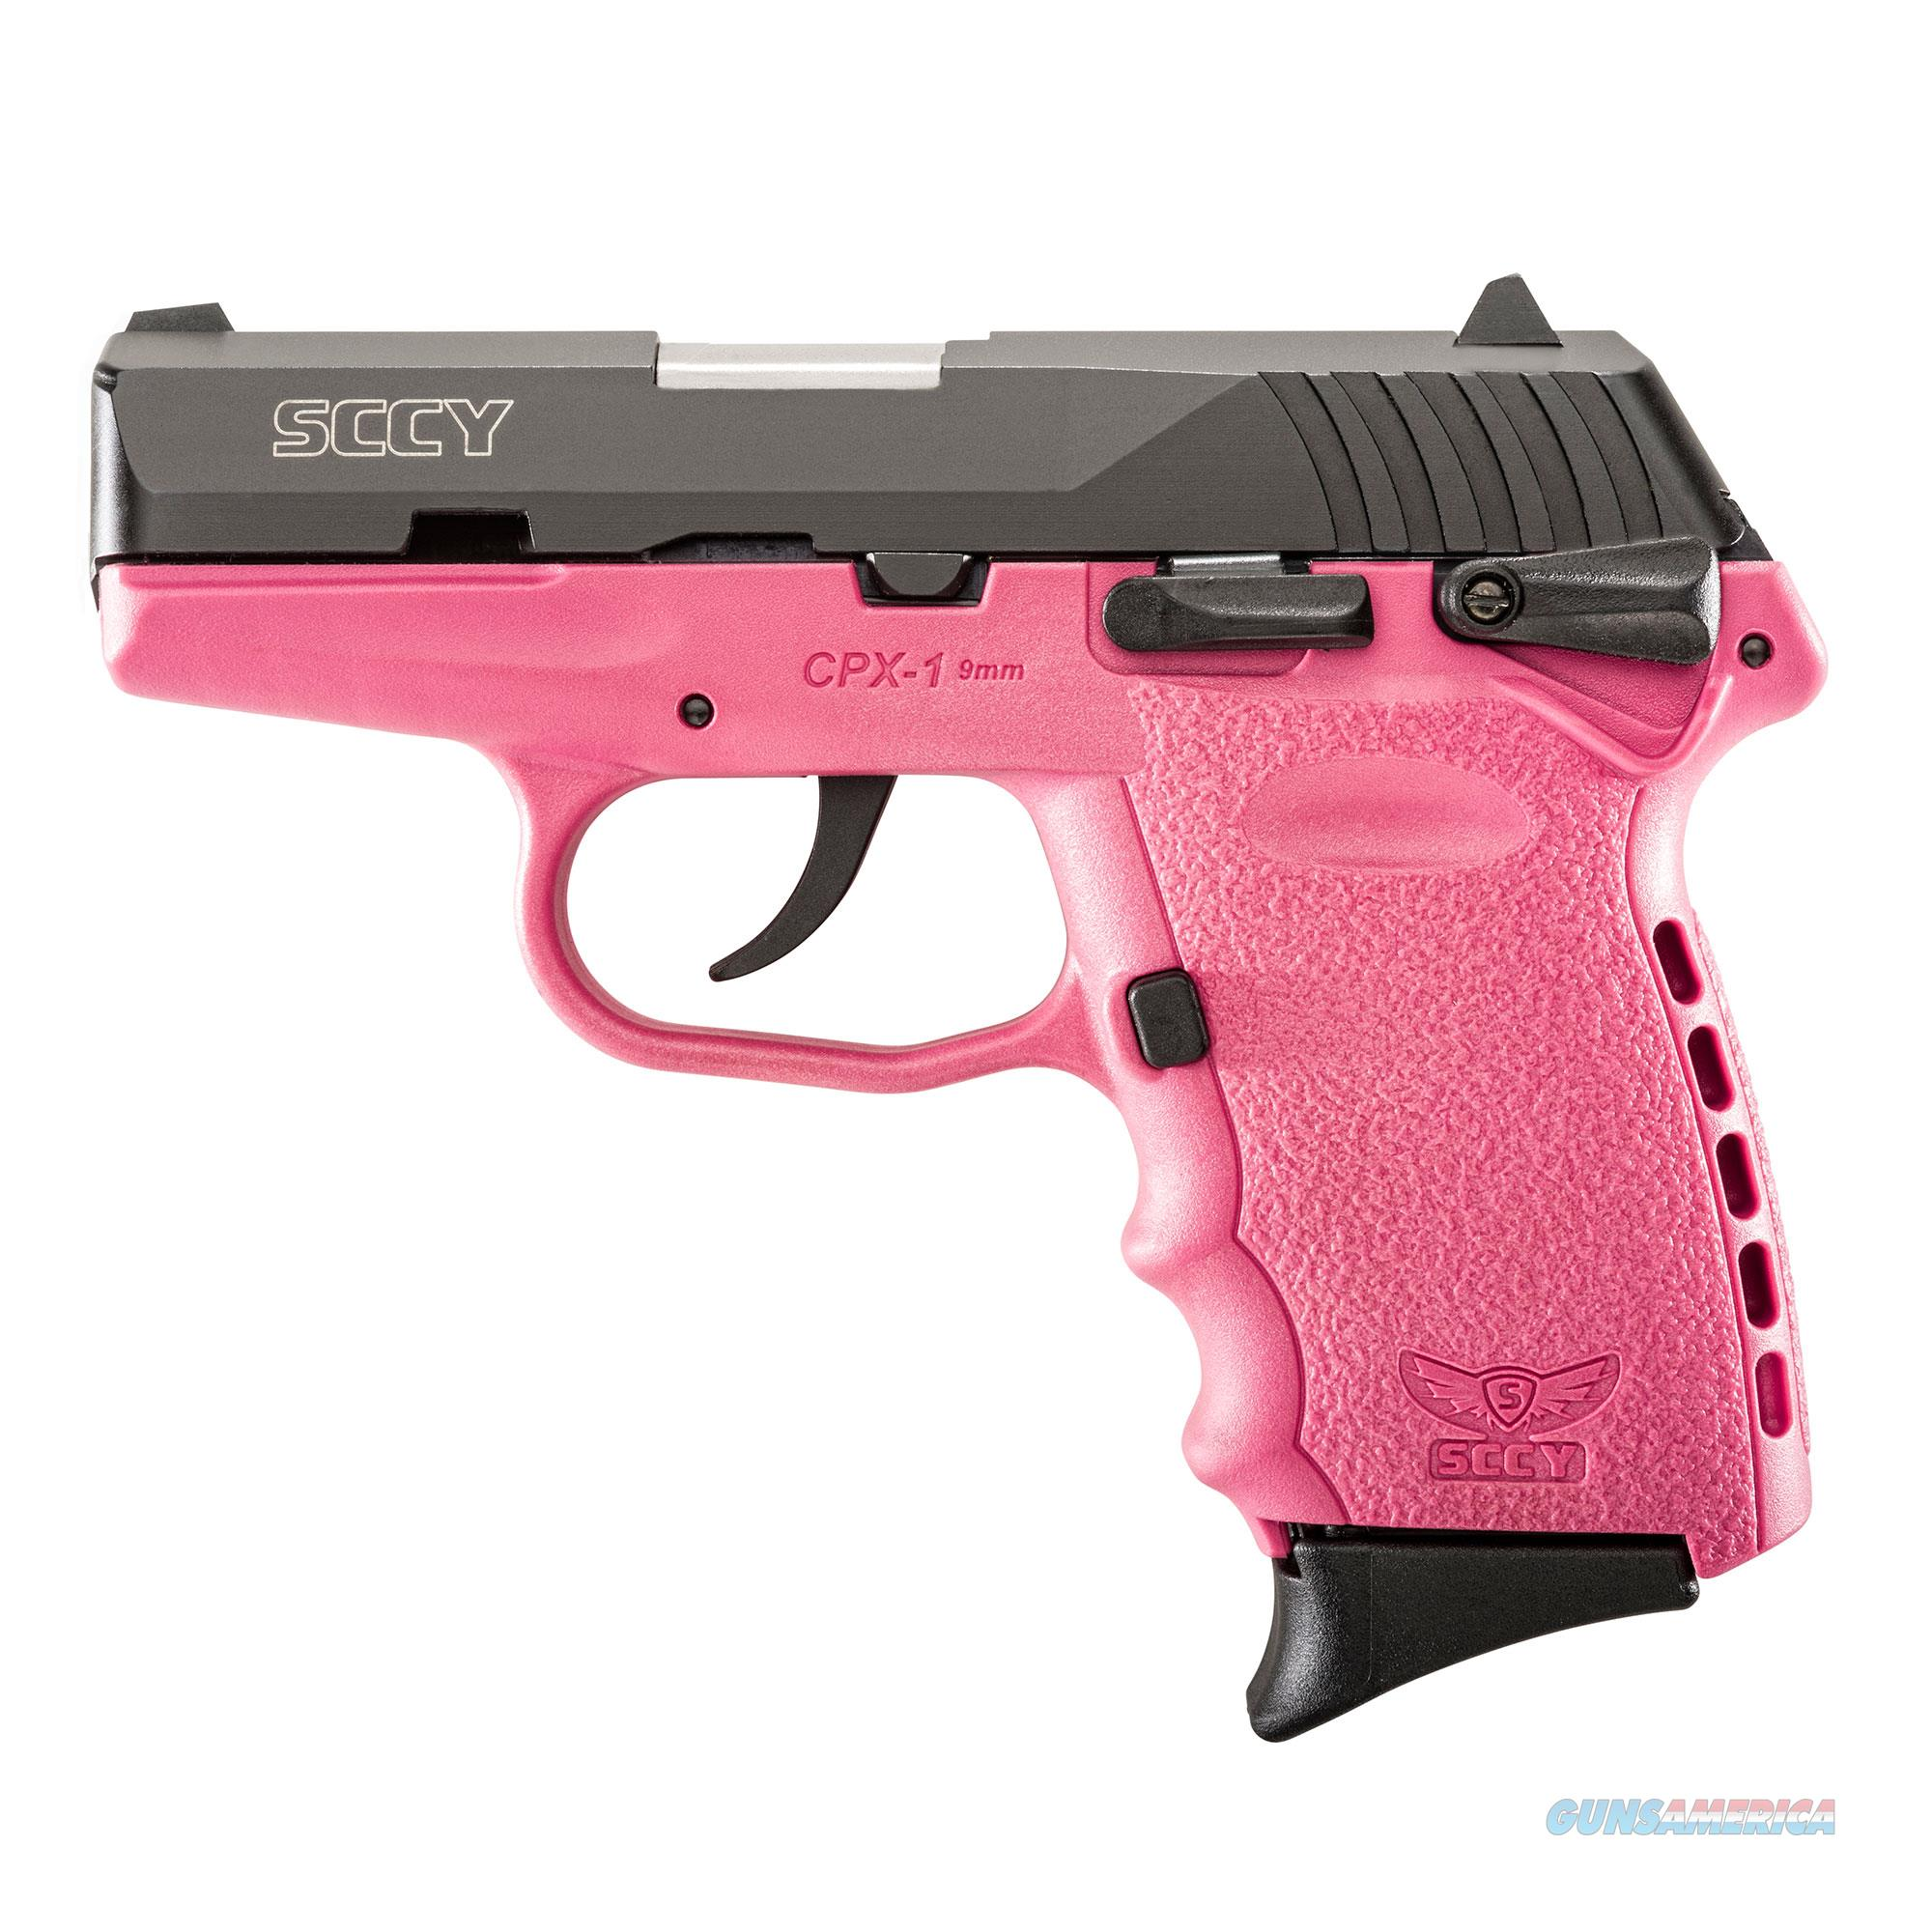 SCCY CPX-1 9MM MATTE / PINK 10+1 CAPACITY NEW IN BOX  Guns > Pistols > SCCY Pistols > CPX1